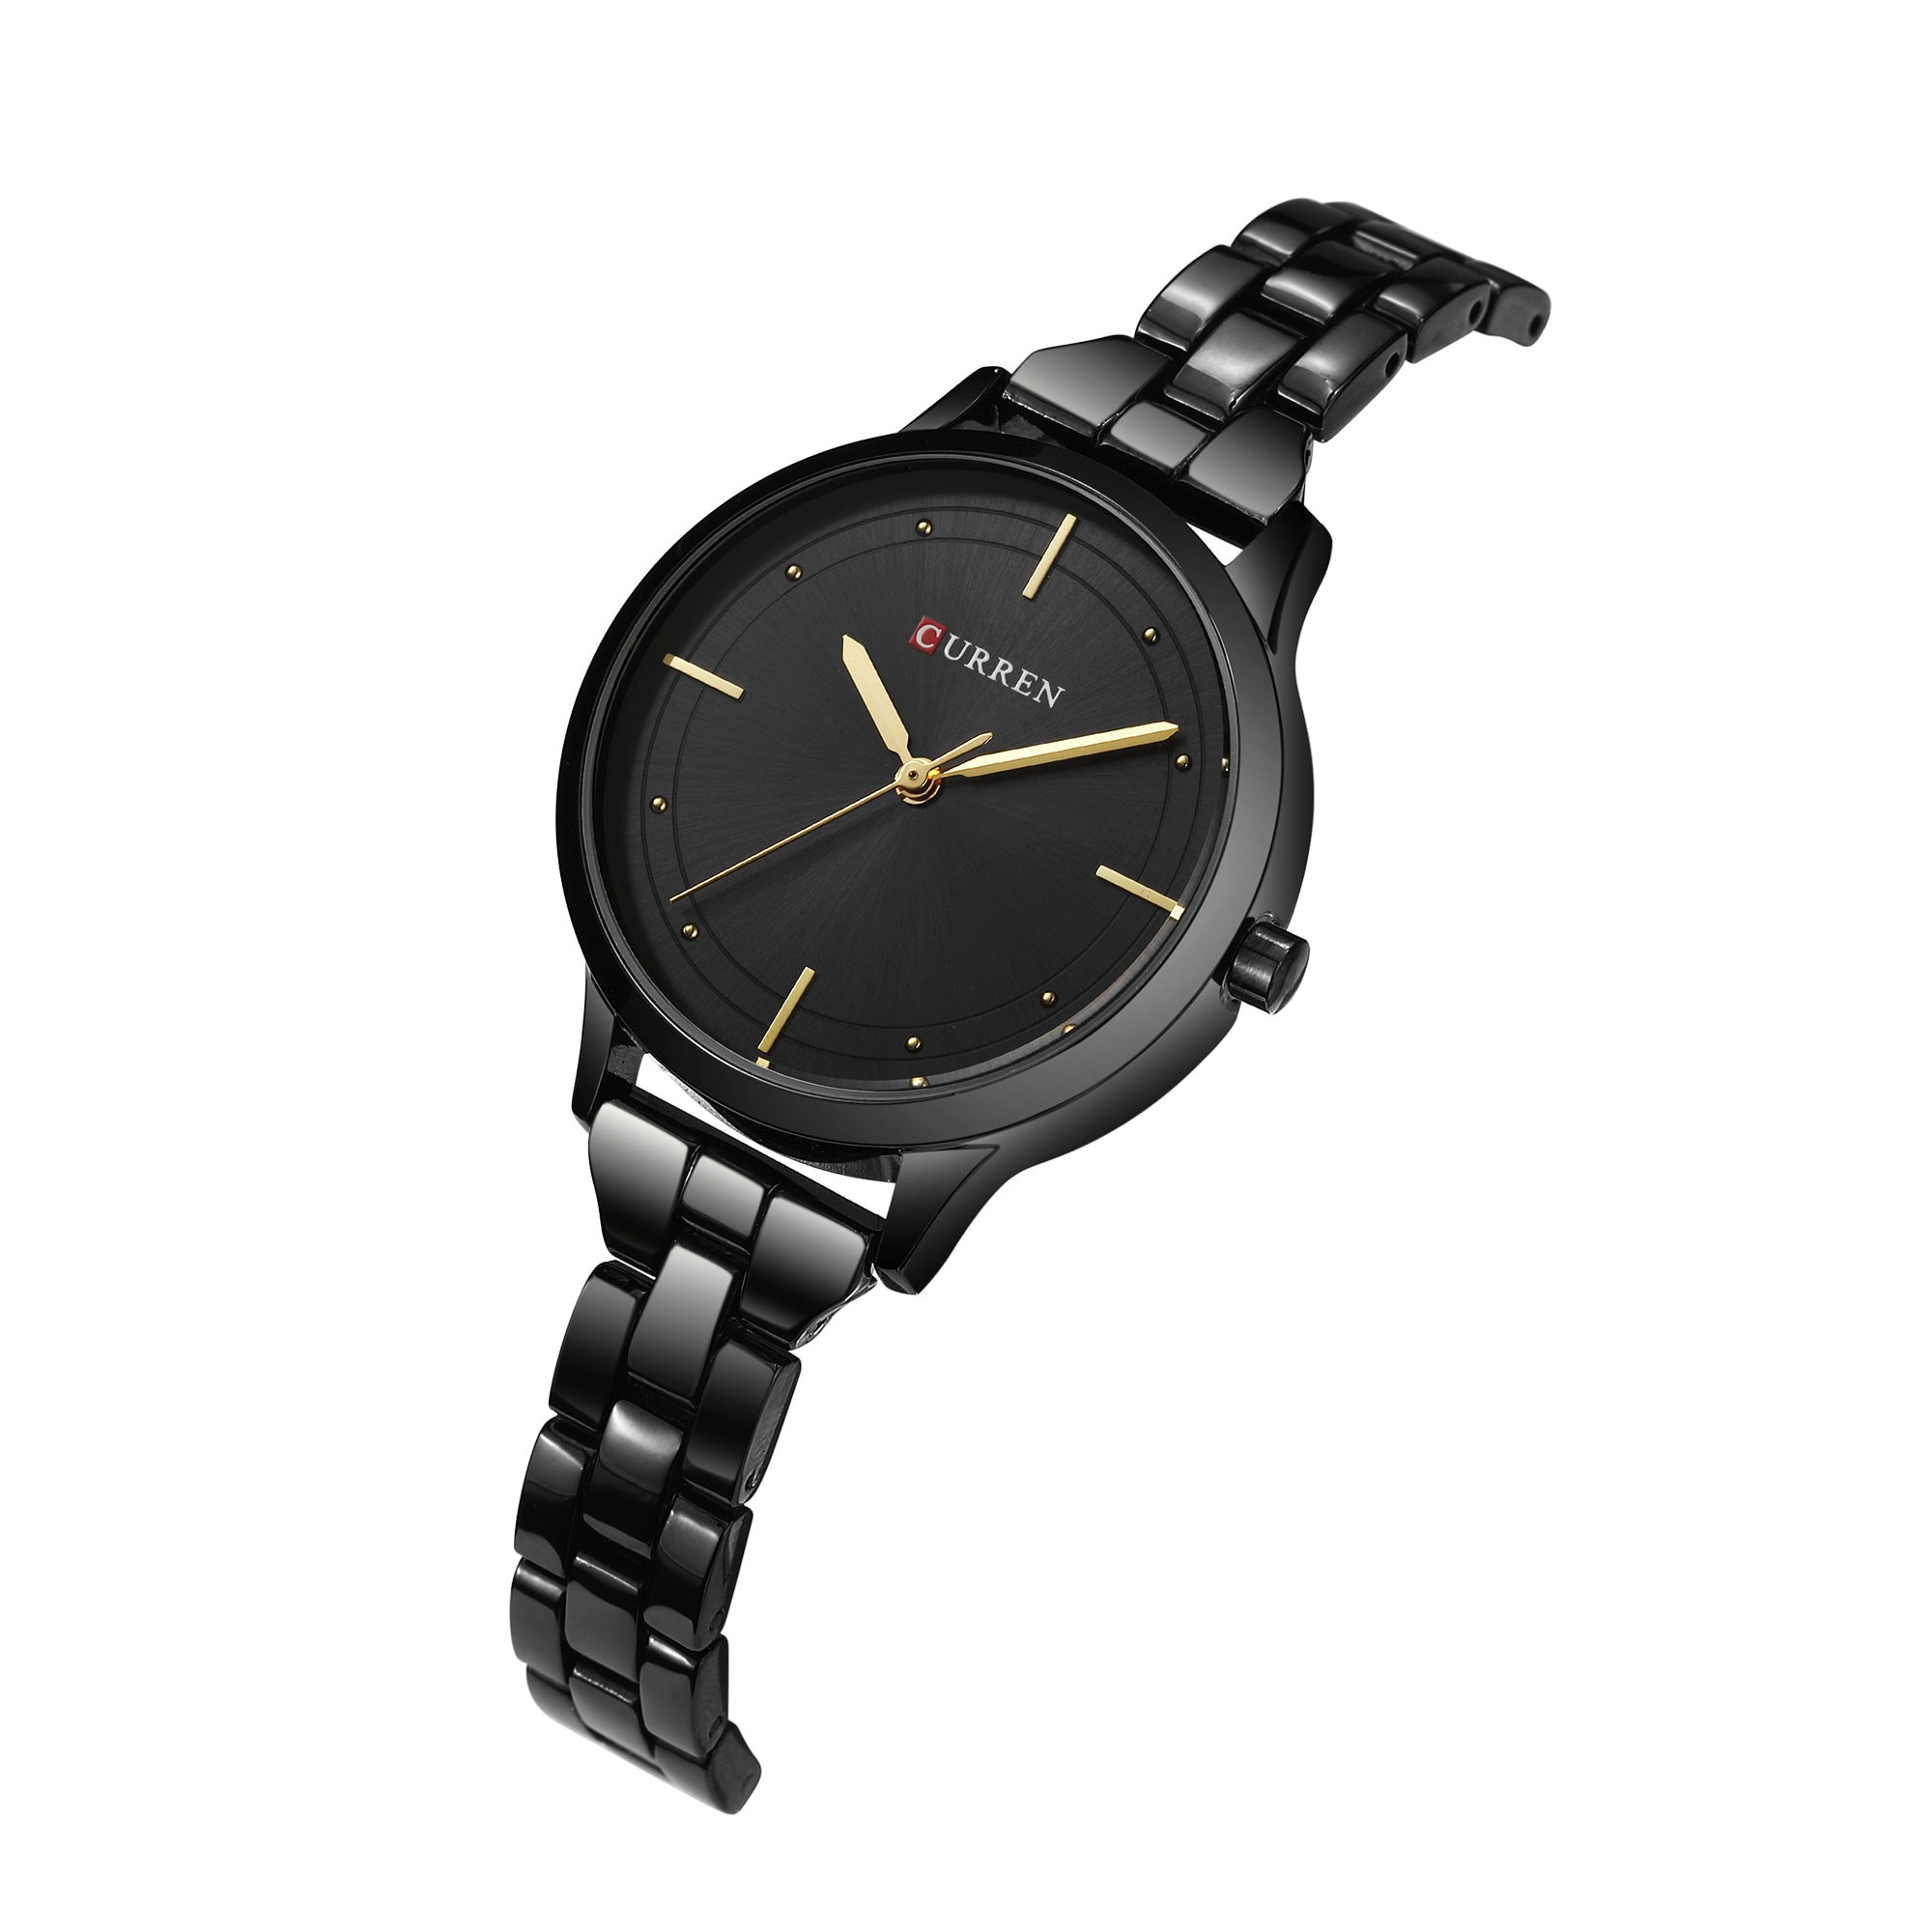 CURREN Casual Female Watch New Arrival Hot Sale Women Watches Quartz Wristwatches Black Stainless Steel Waterproof Reloj Mujer